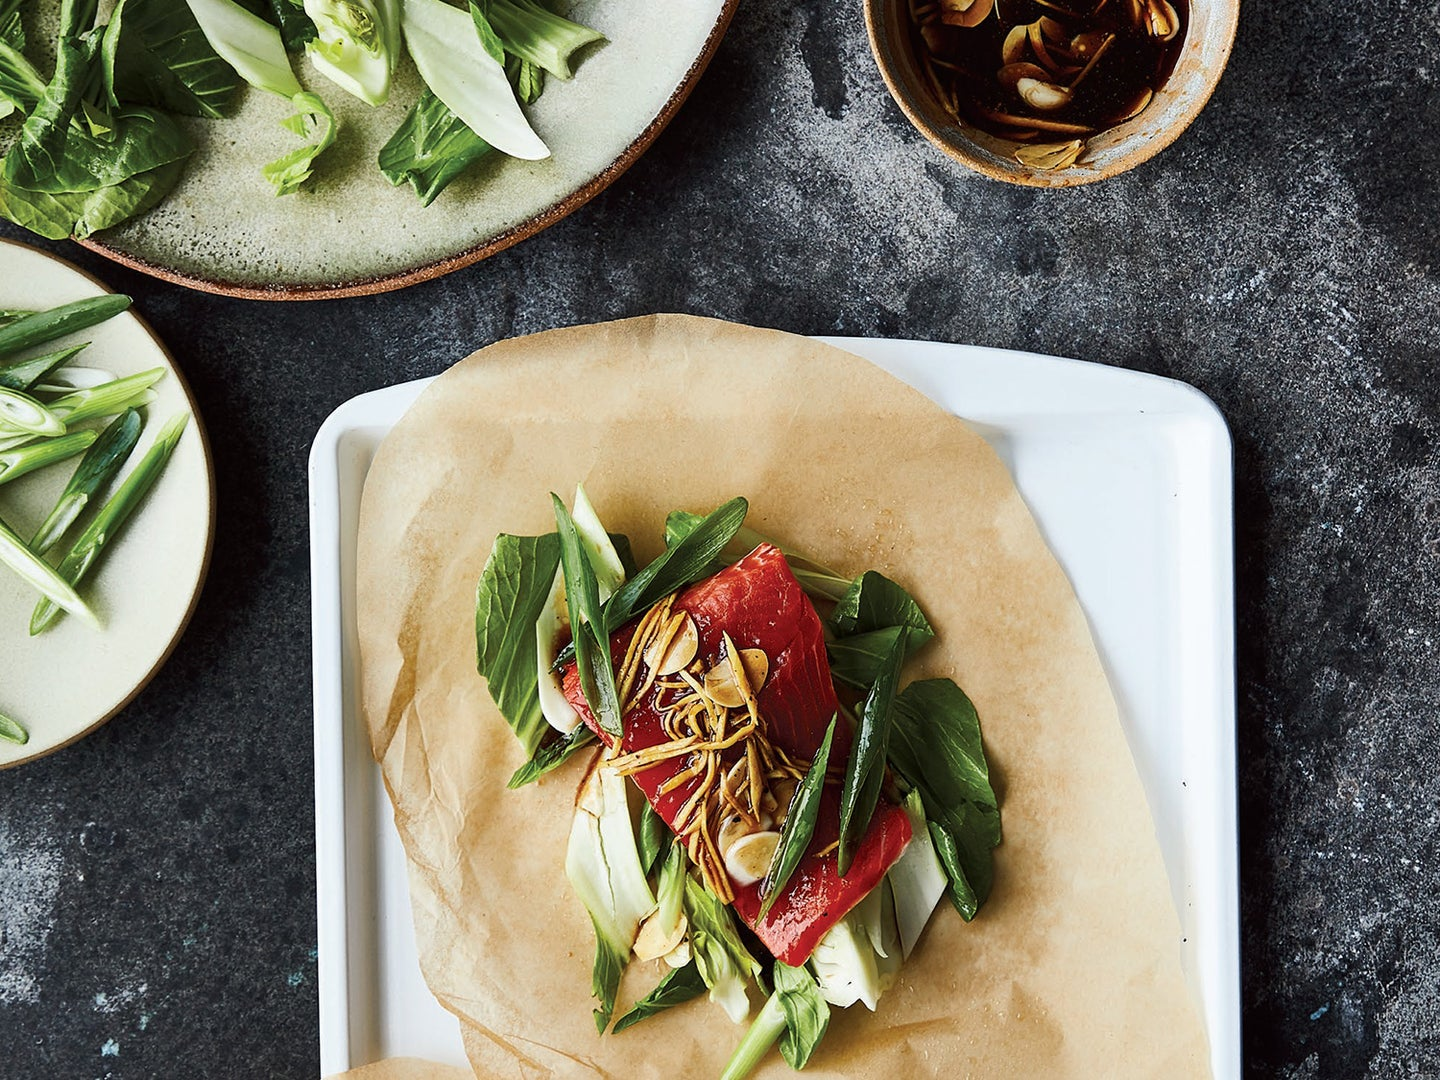 How to Cook Legit Vietnamese Food Using Ingredients from Your Local Supermarket